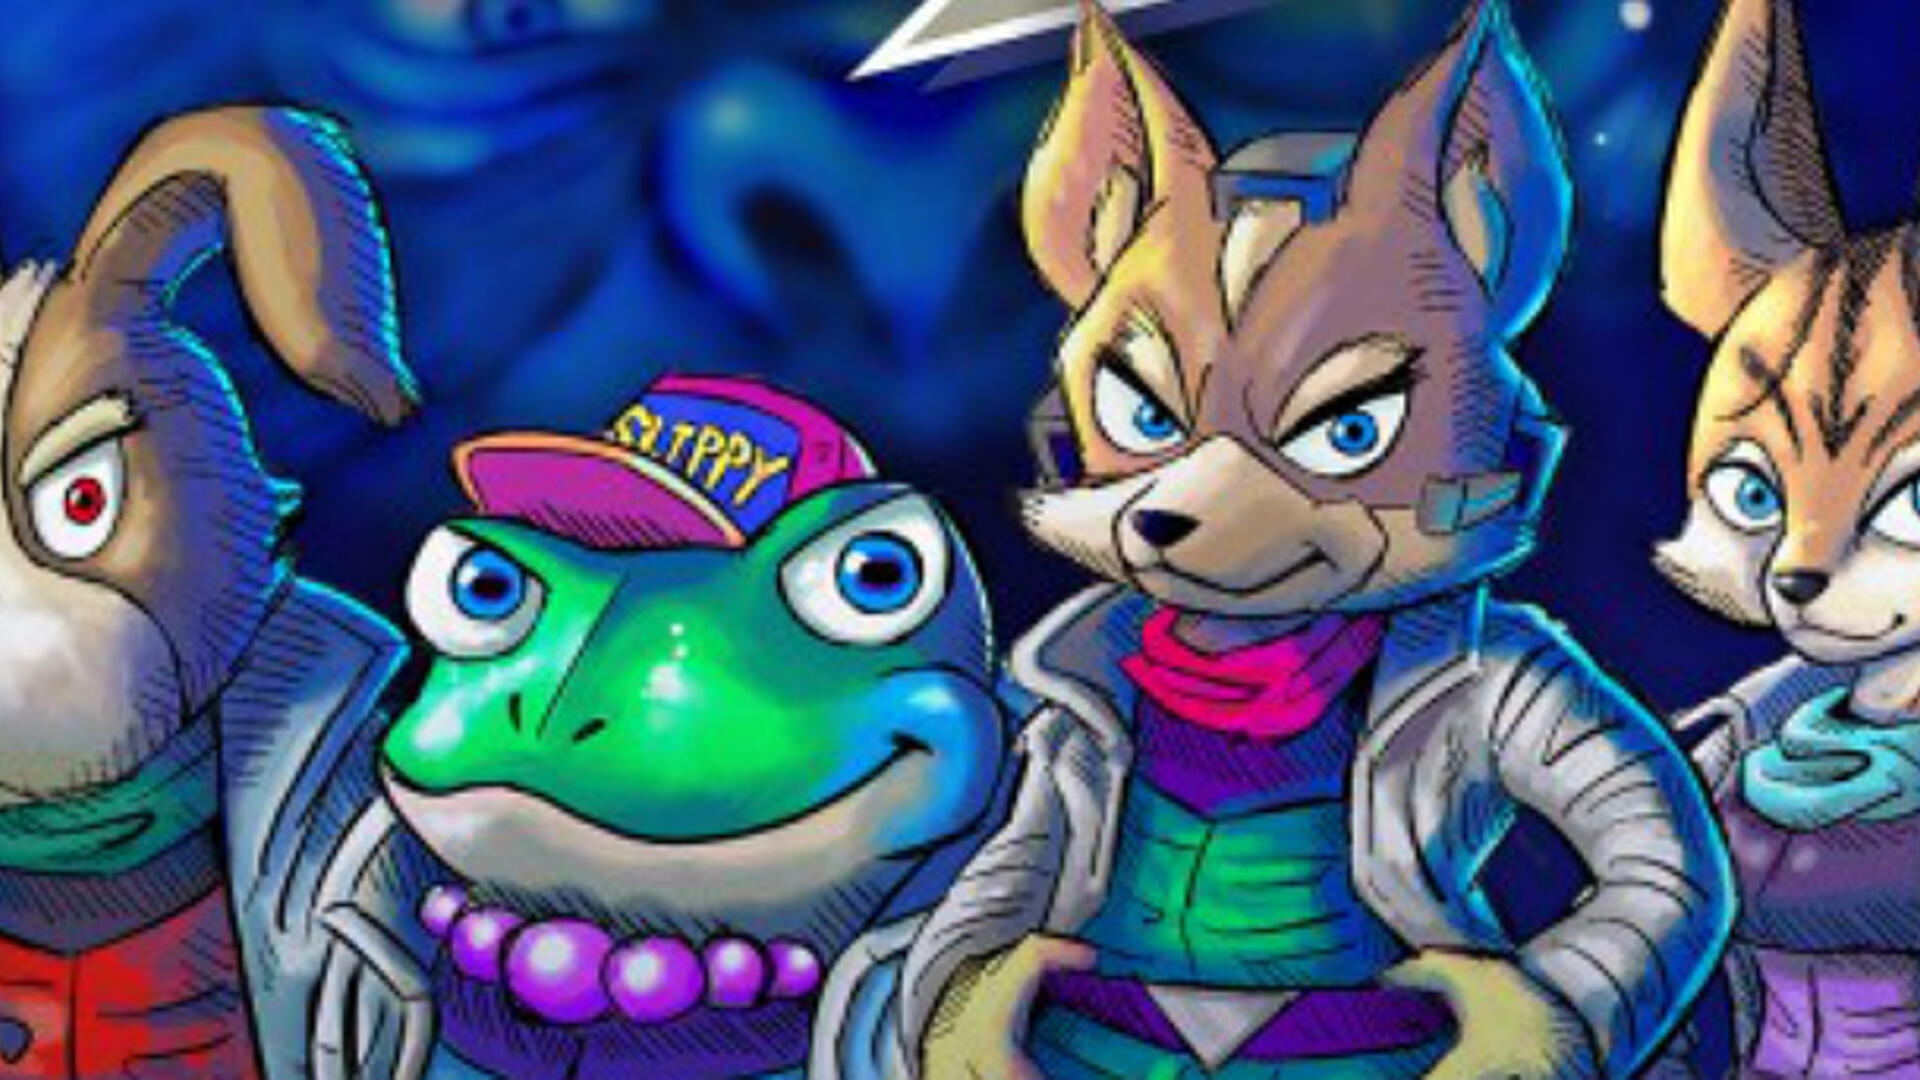 Less Than a Day Into the SNES Classic Launch and the Star Fox 2 ROM has Already Leaked Online